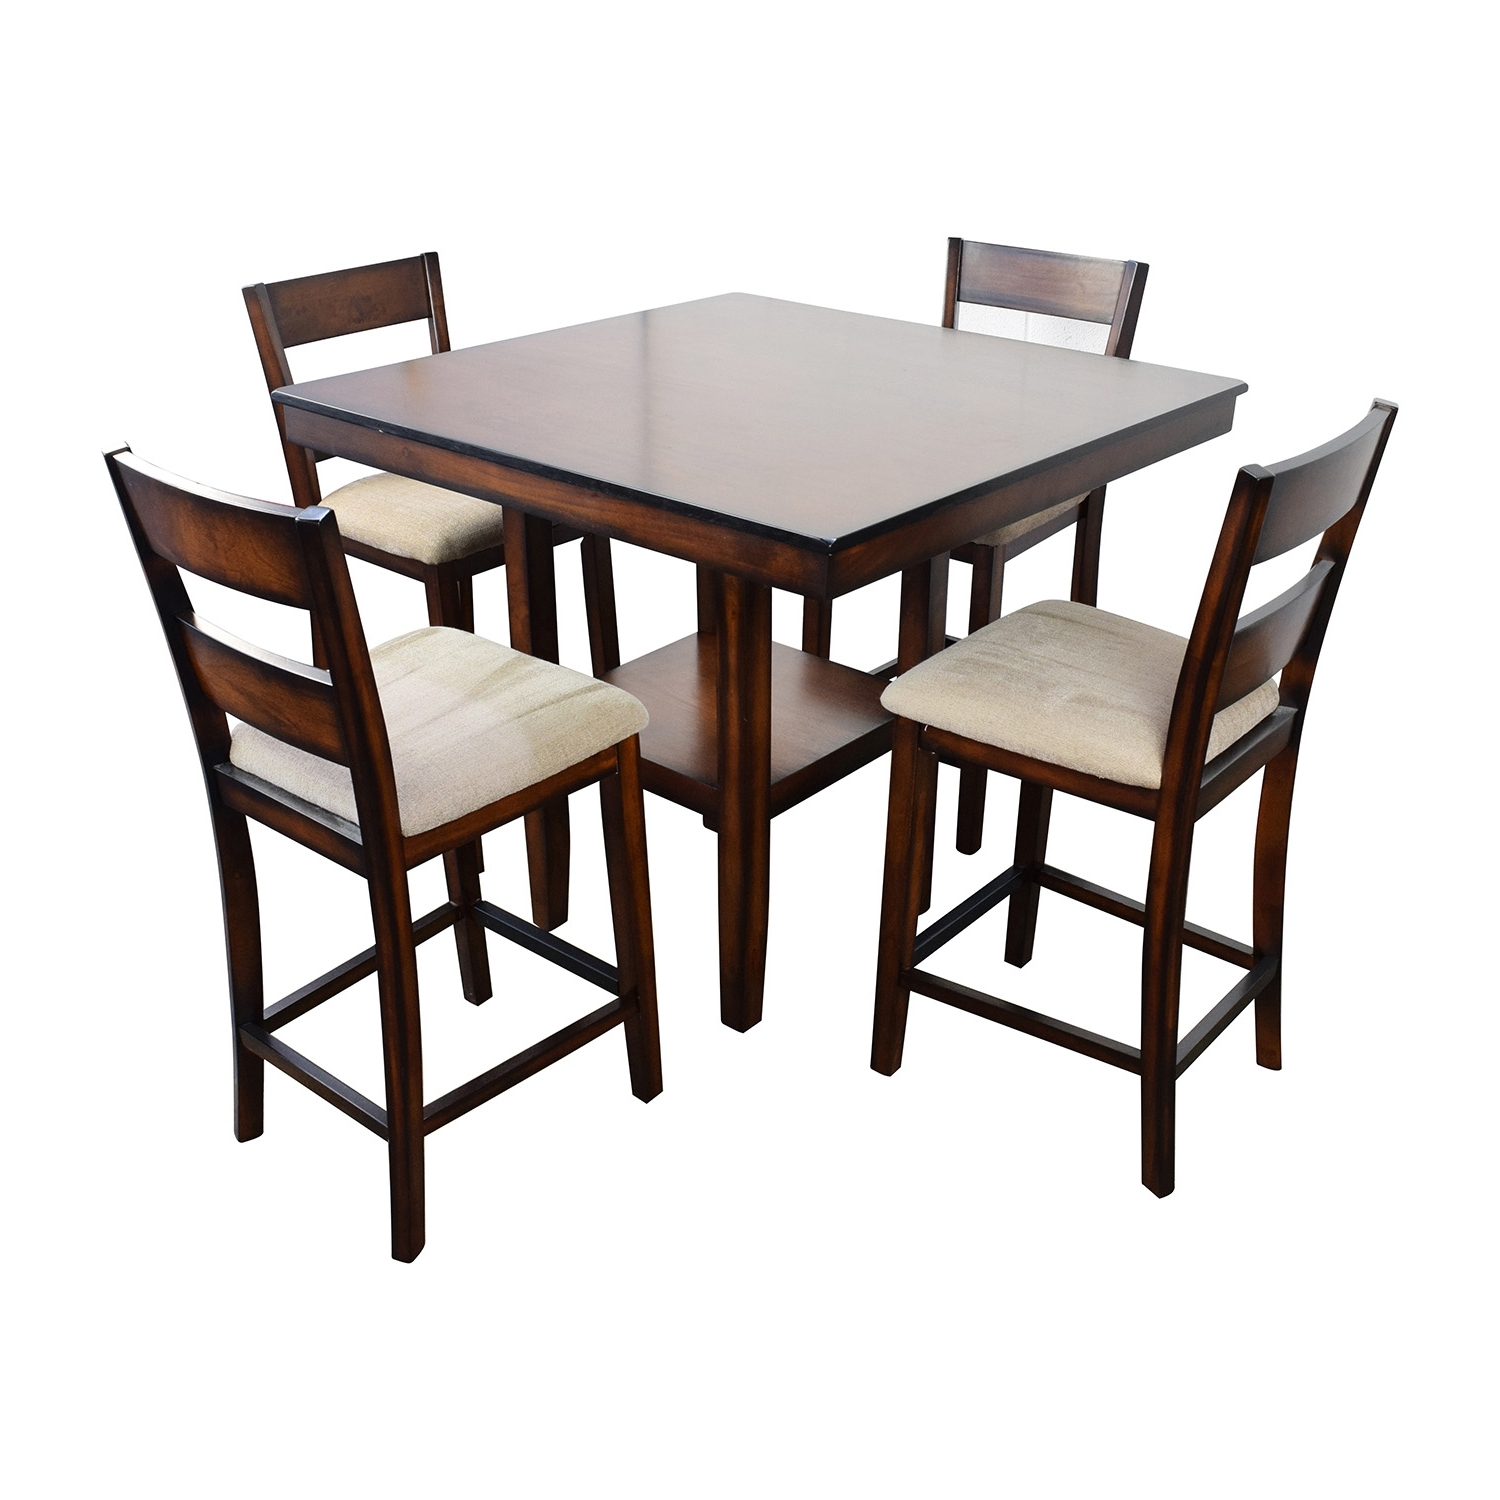 [%66% Off – Macy's Macy's Branton 5 Pc. Counter Height Dining Set / Tables Pertaining To Preferred Macie 5 Piece Round Dining Sets|Macie 5 Piece Round Dining Sets Throughout Latest 66% Off – Macy's Macy's Branton 5 Pc. Counter Height Dining Set / Tables|Trendy Macie 5 Piece Round Dining Sets Regarding 66% Off – Macy's Macy's Branton 5 Pc. Counter Height Dining Set / Tables|Most Current 66% Off – Macy's Macy's Branton 5 Pc (View 1 of 25)